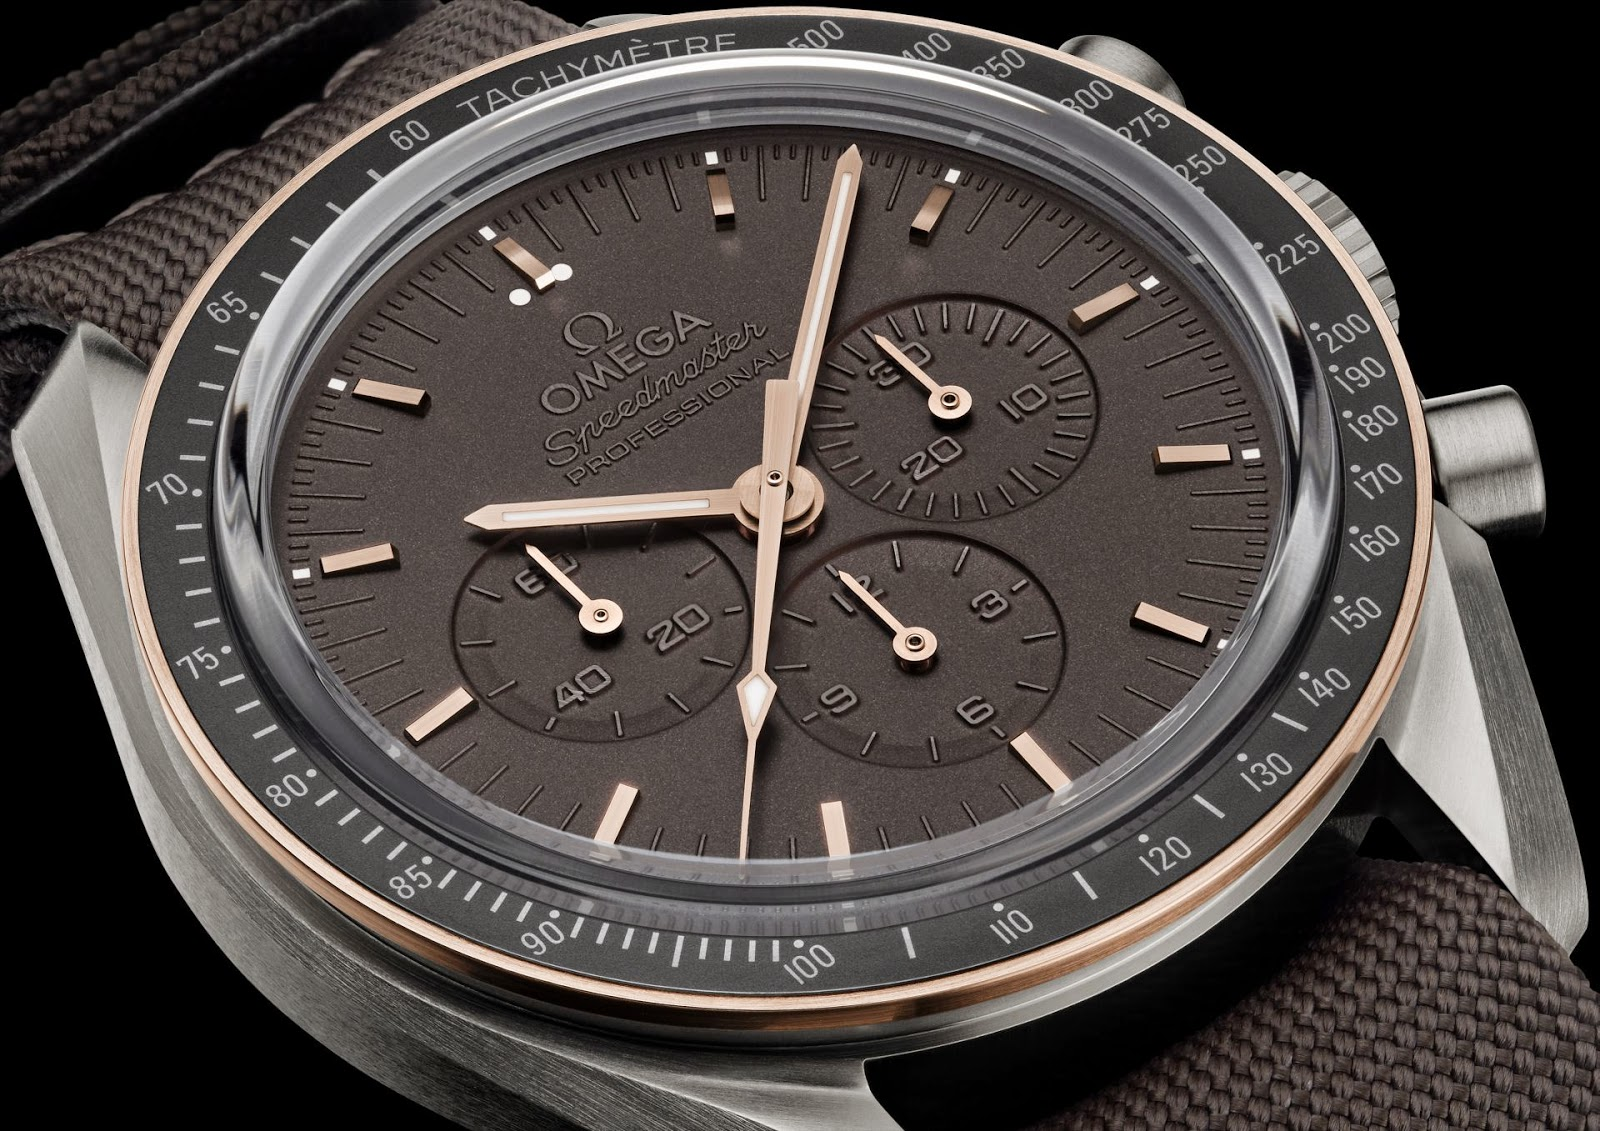 Omega Speedmaster Professional Apollo 11 replica watch